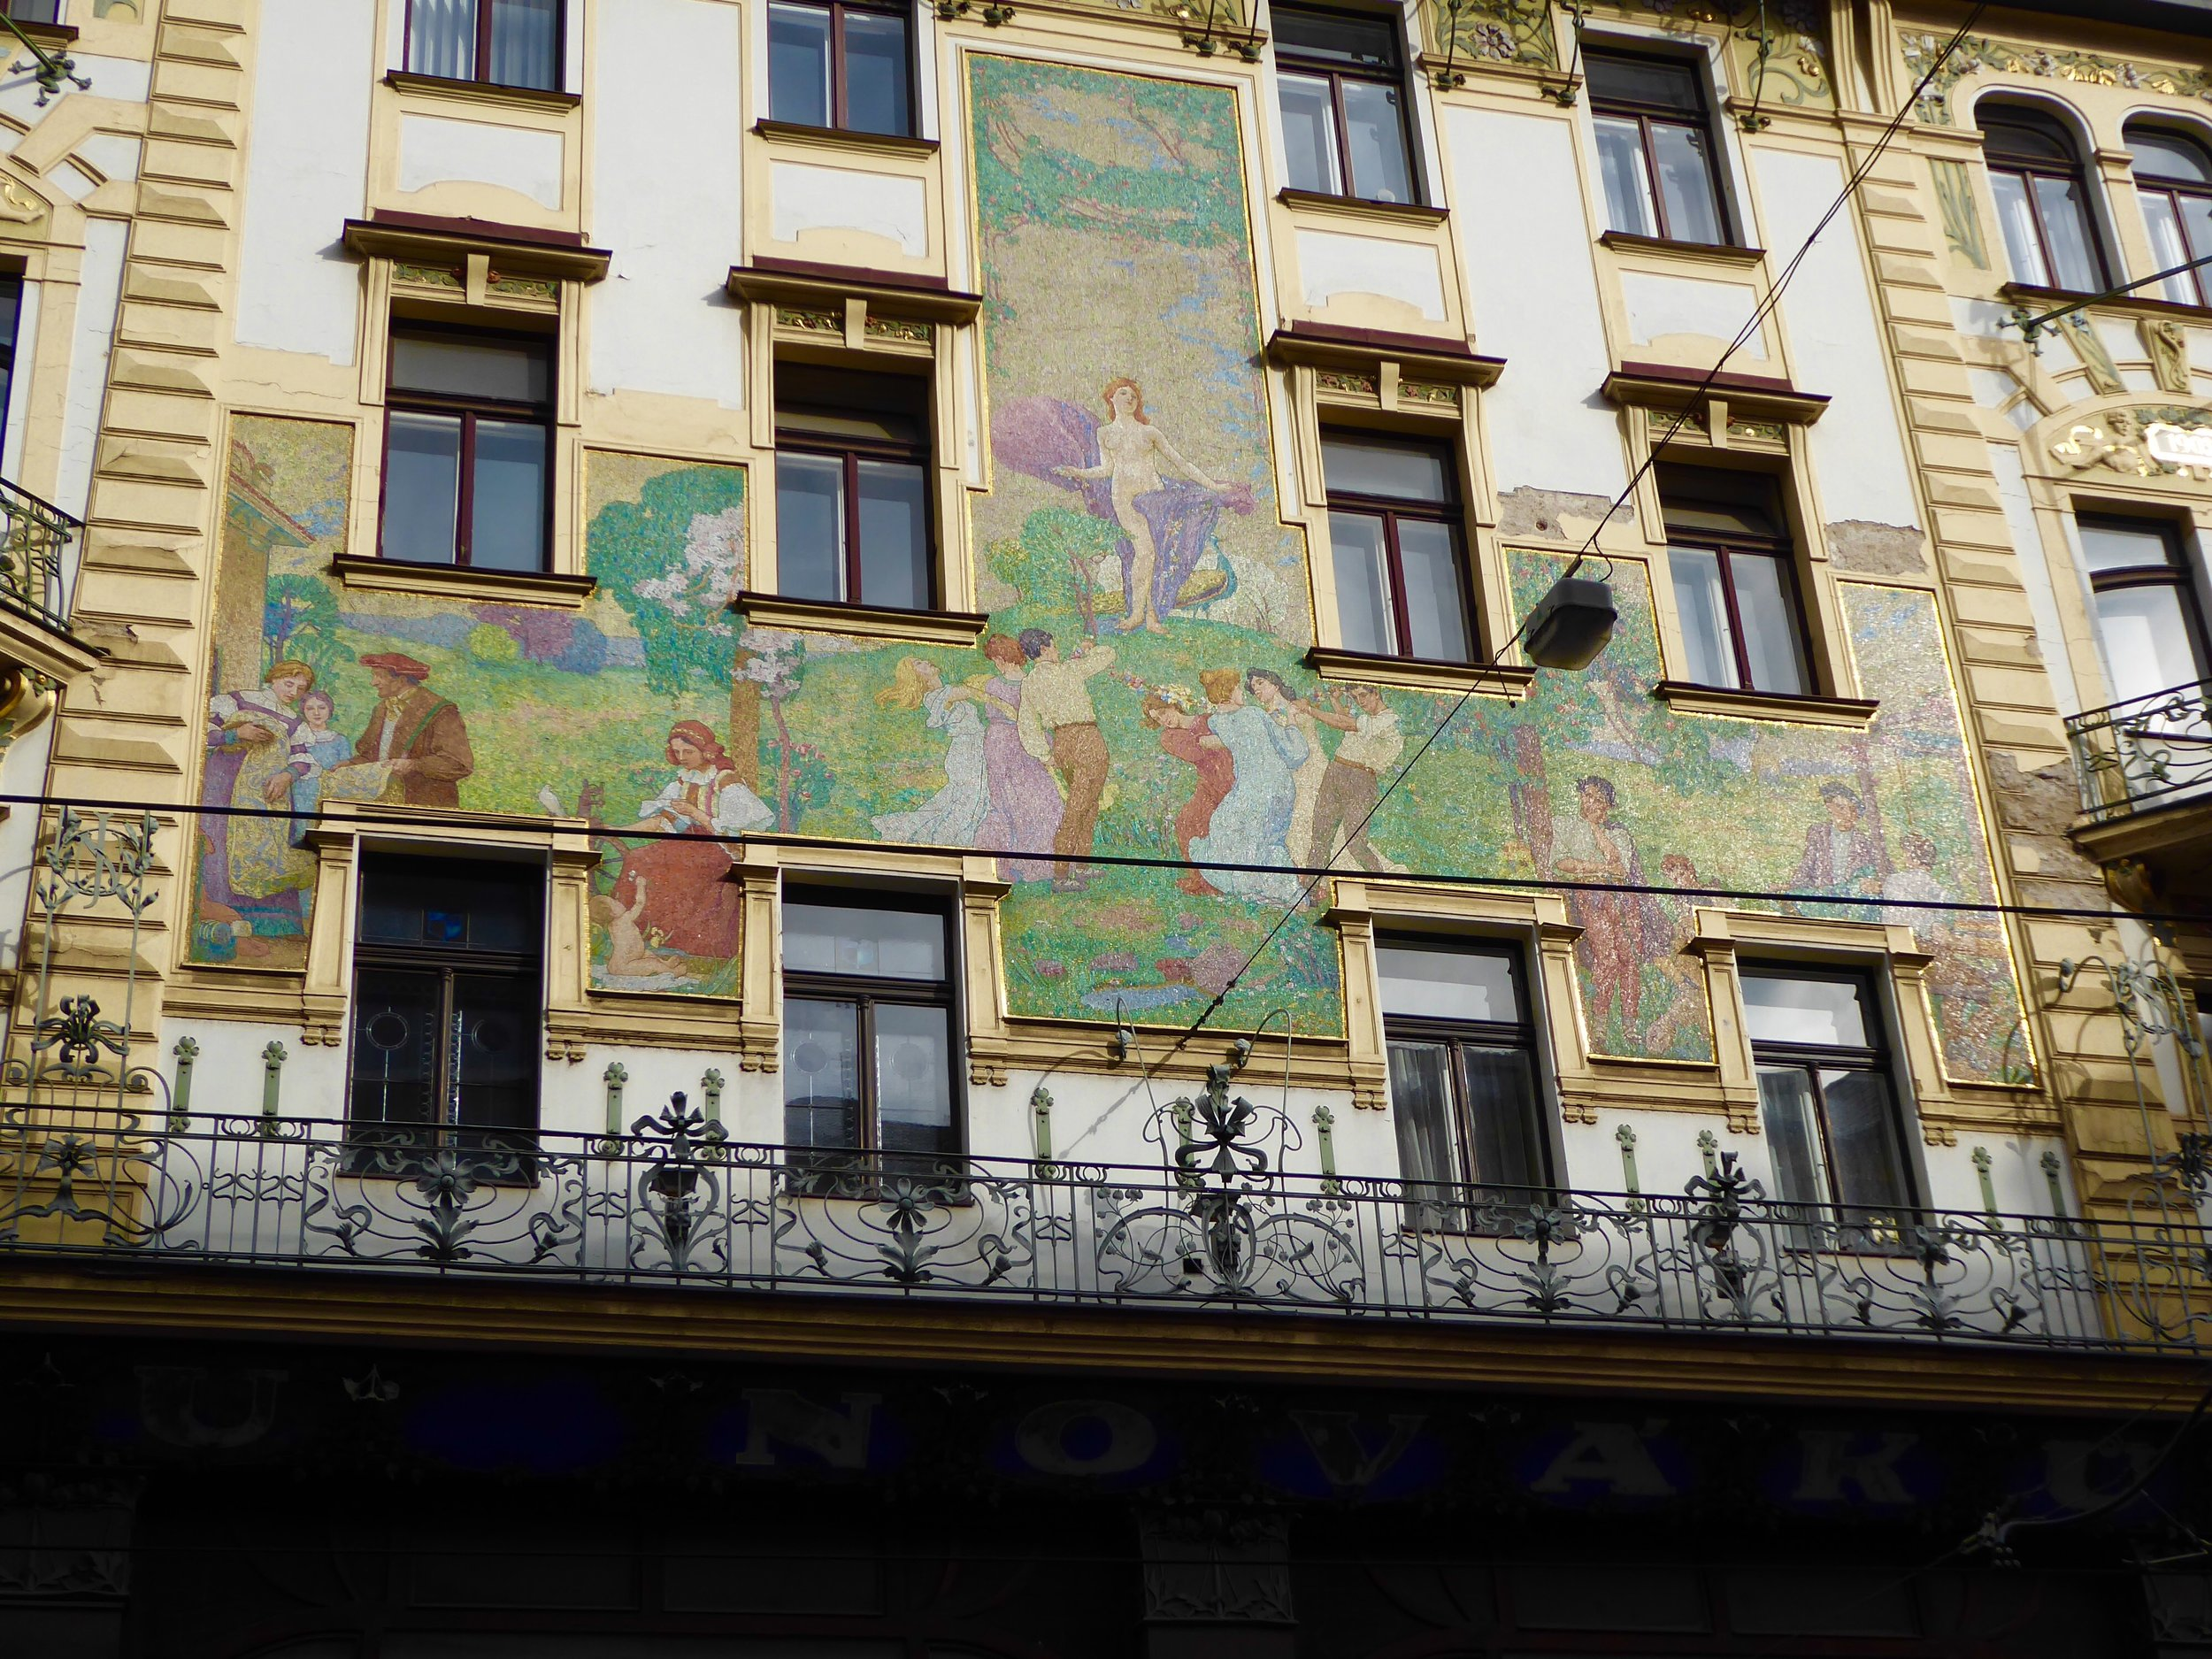 A walk along the river takes us past countless art neuvo buildings.